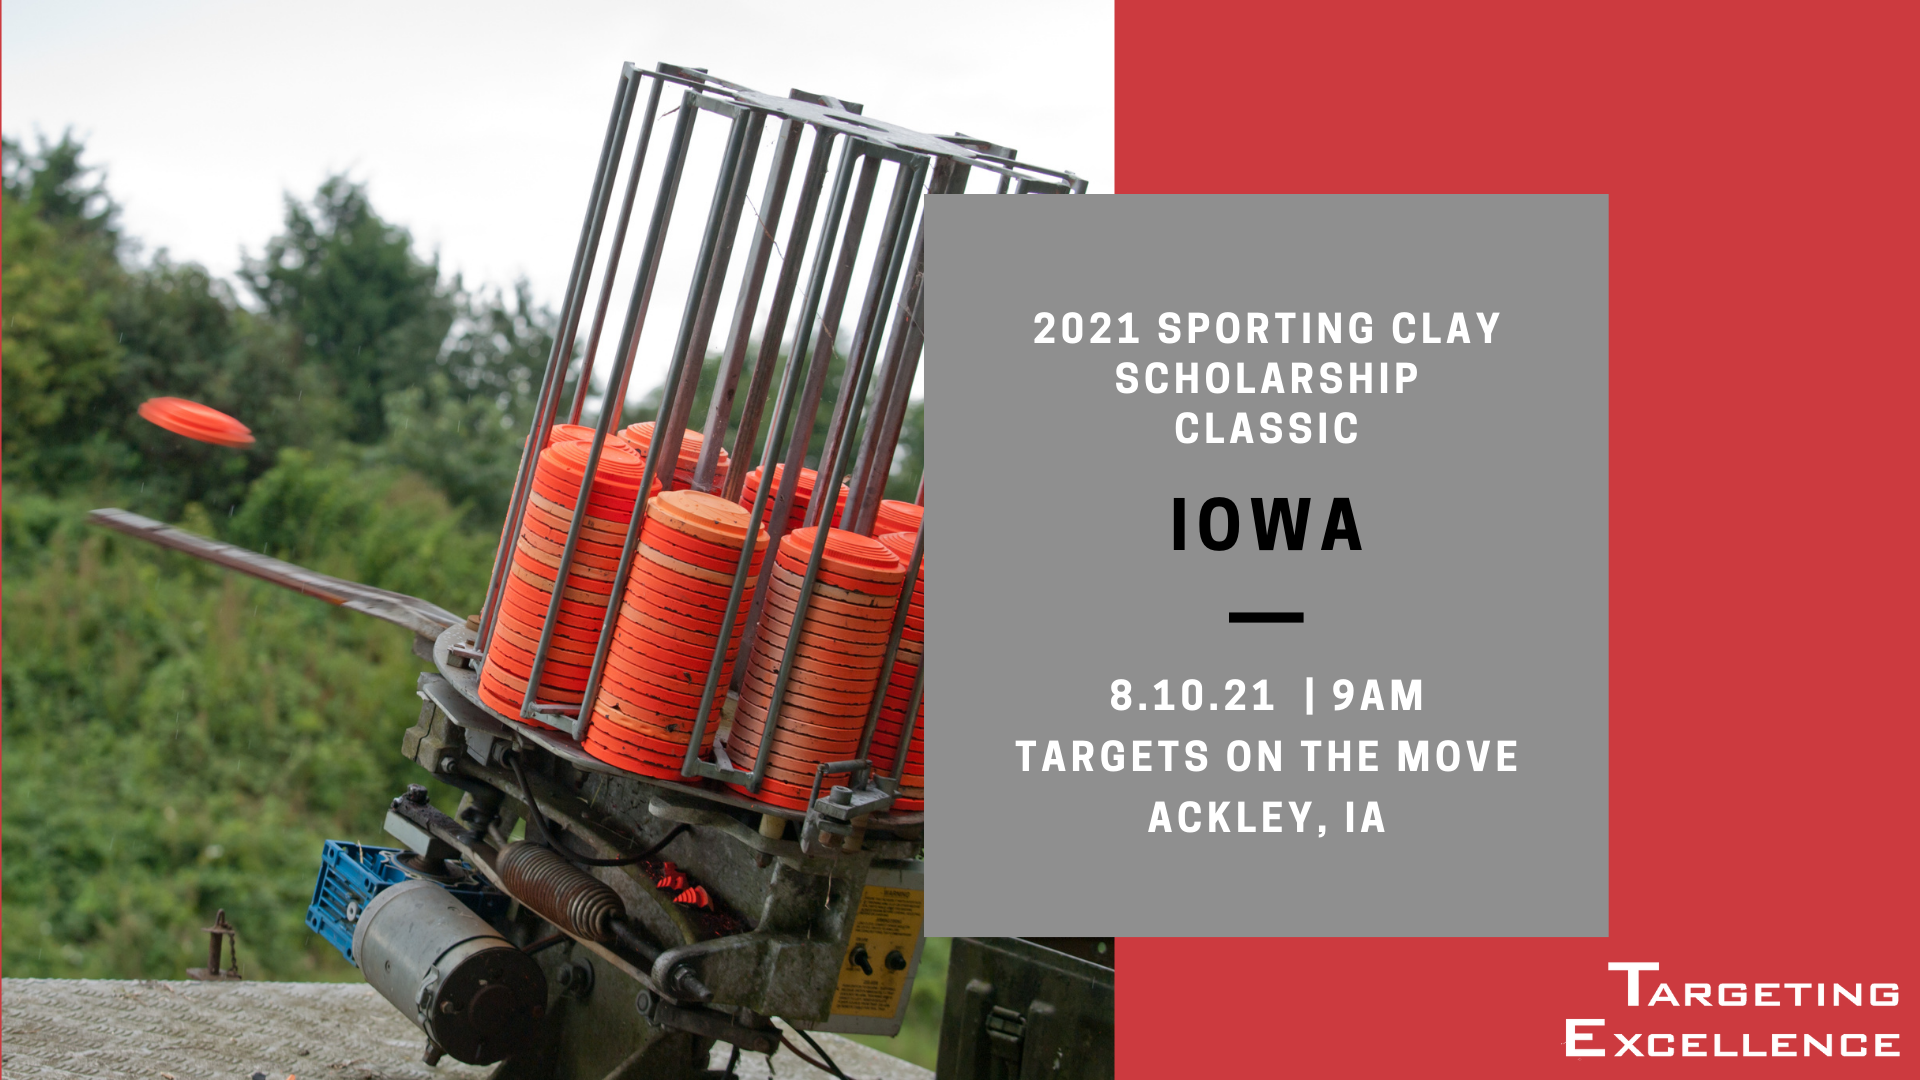 2021 Iowa Targeting Excellence Sporting Clay Scholarship Classic